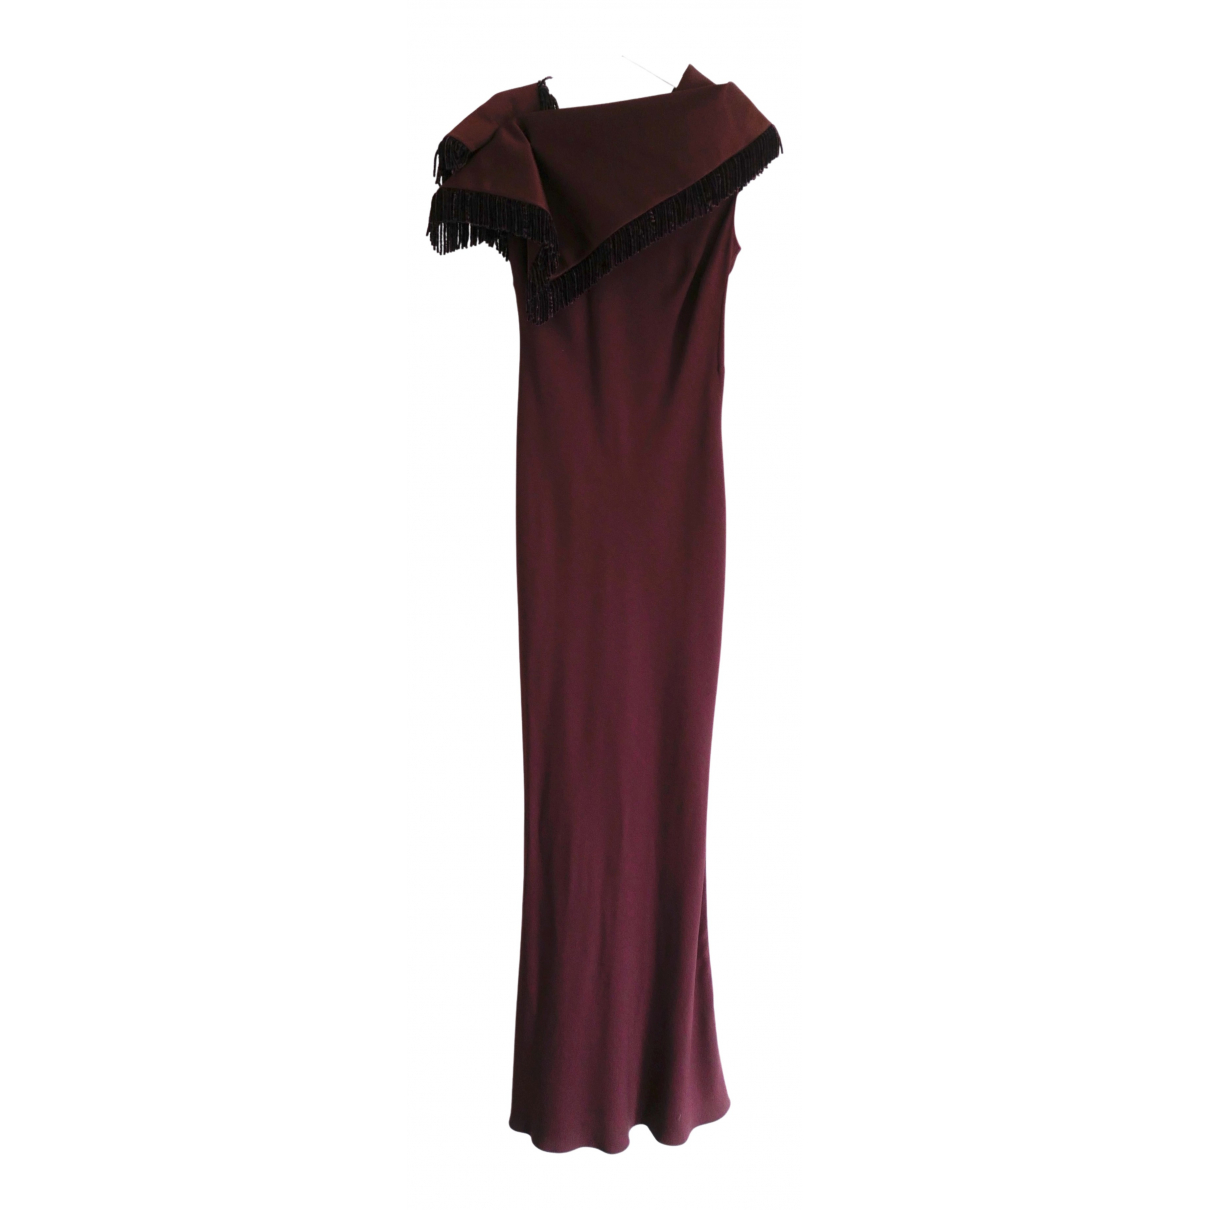 John Galliano N Burgundy dress for Women 40 FR